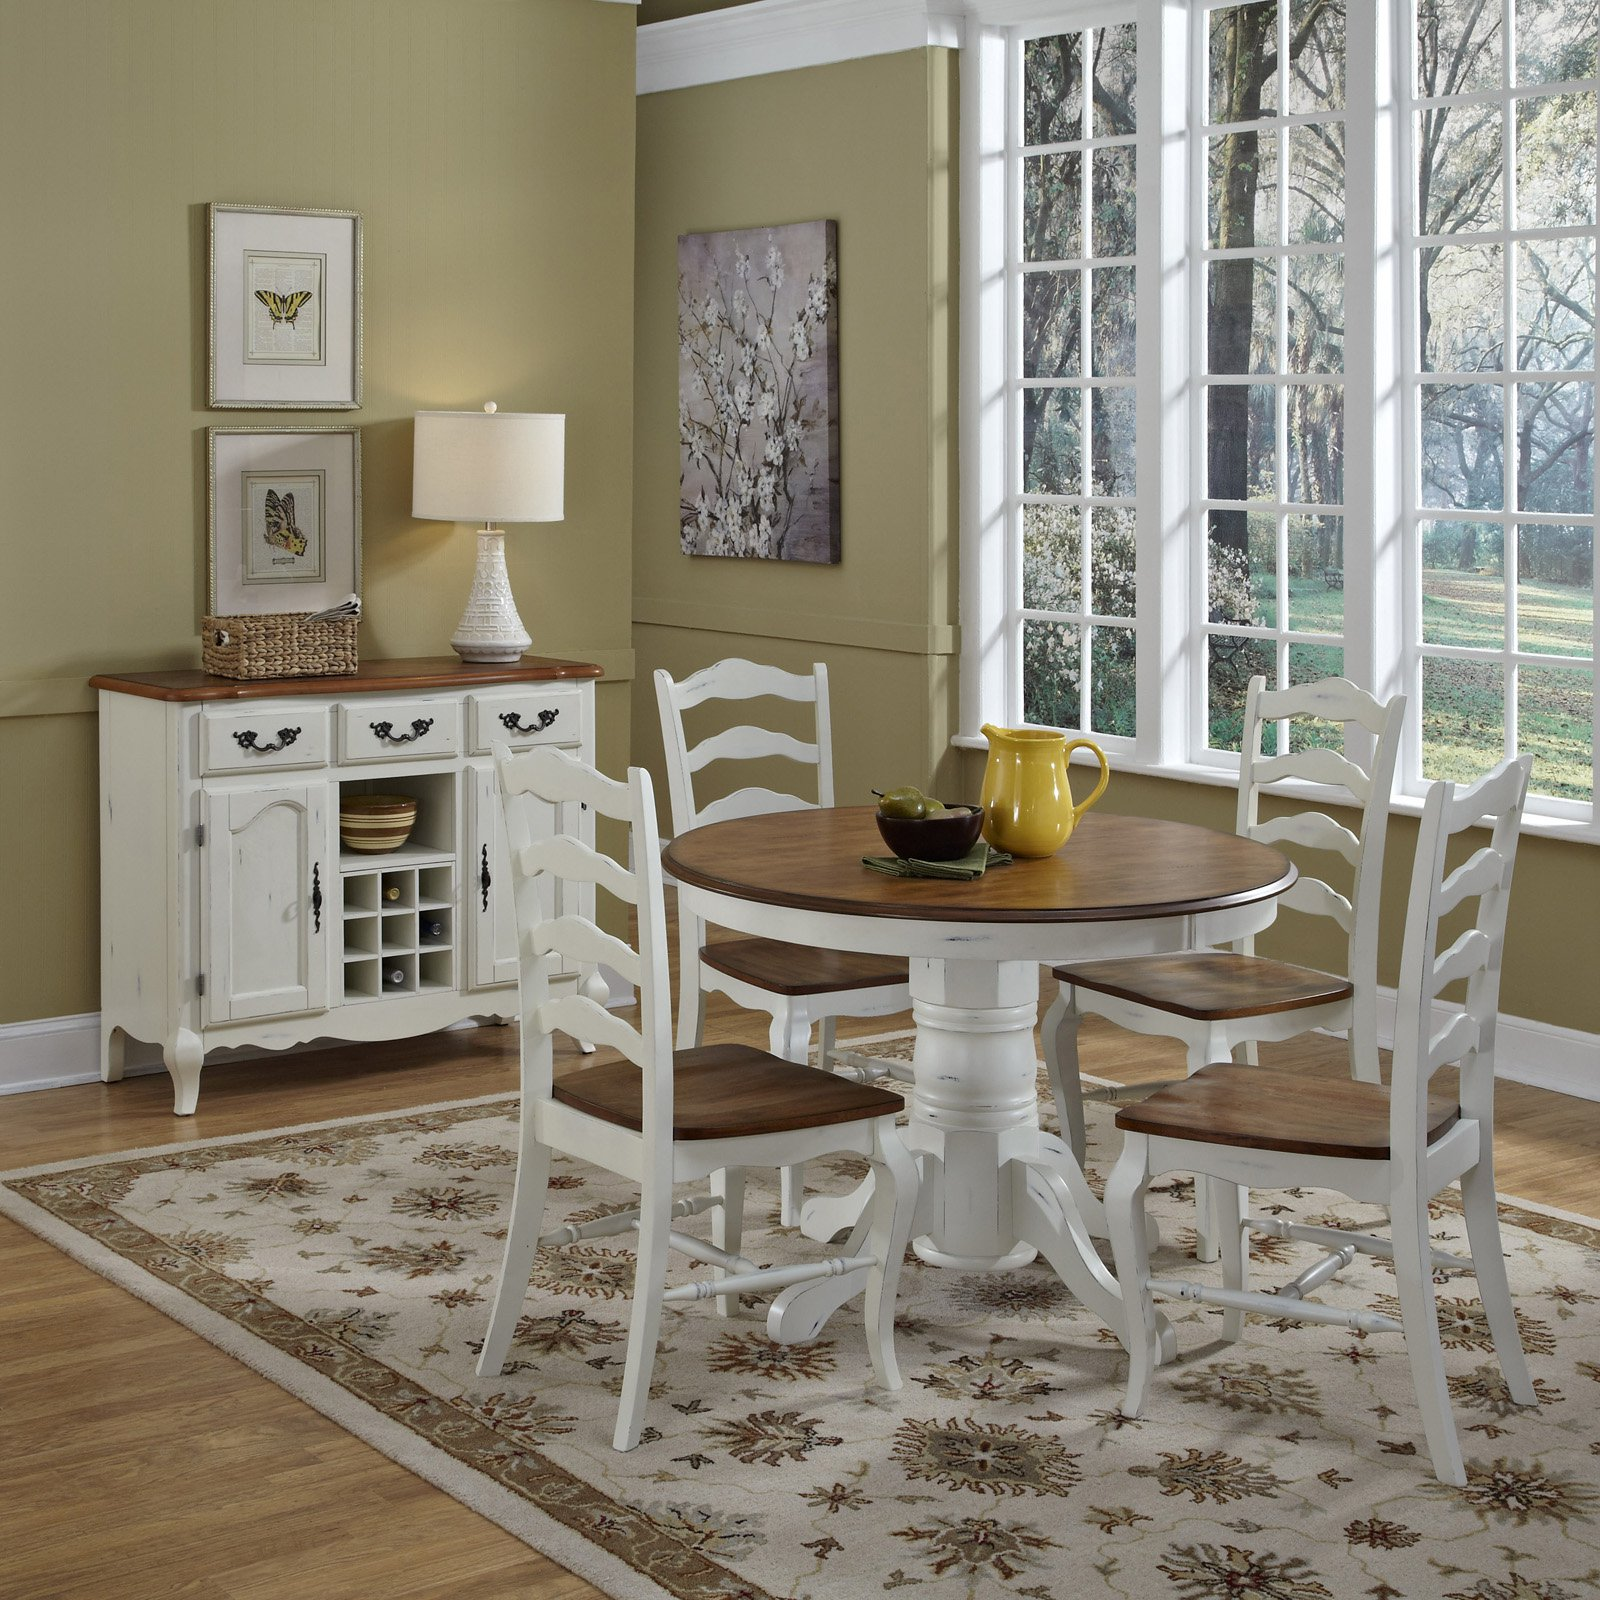 Home Styles The French Countryside Oak Dining Chairs   Set Of 2    Walmart.com